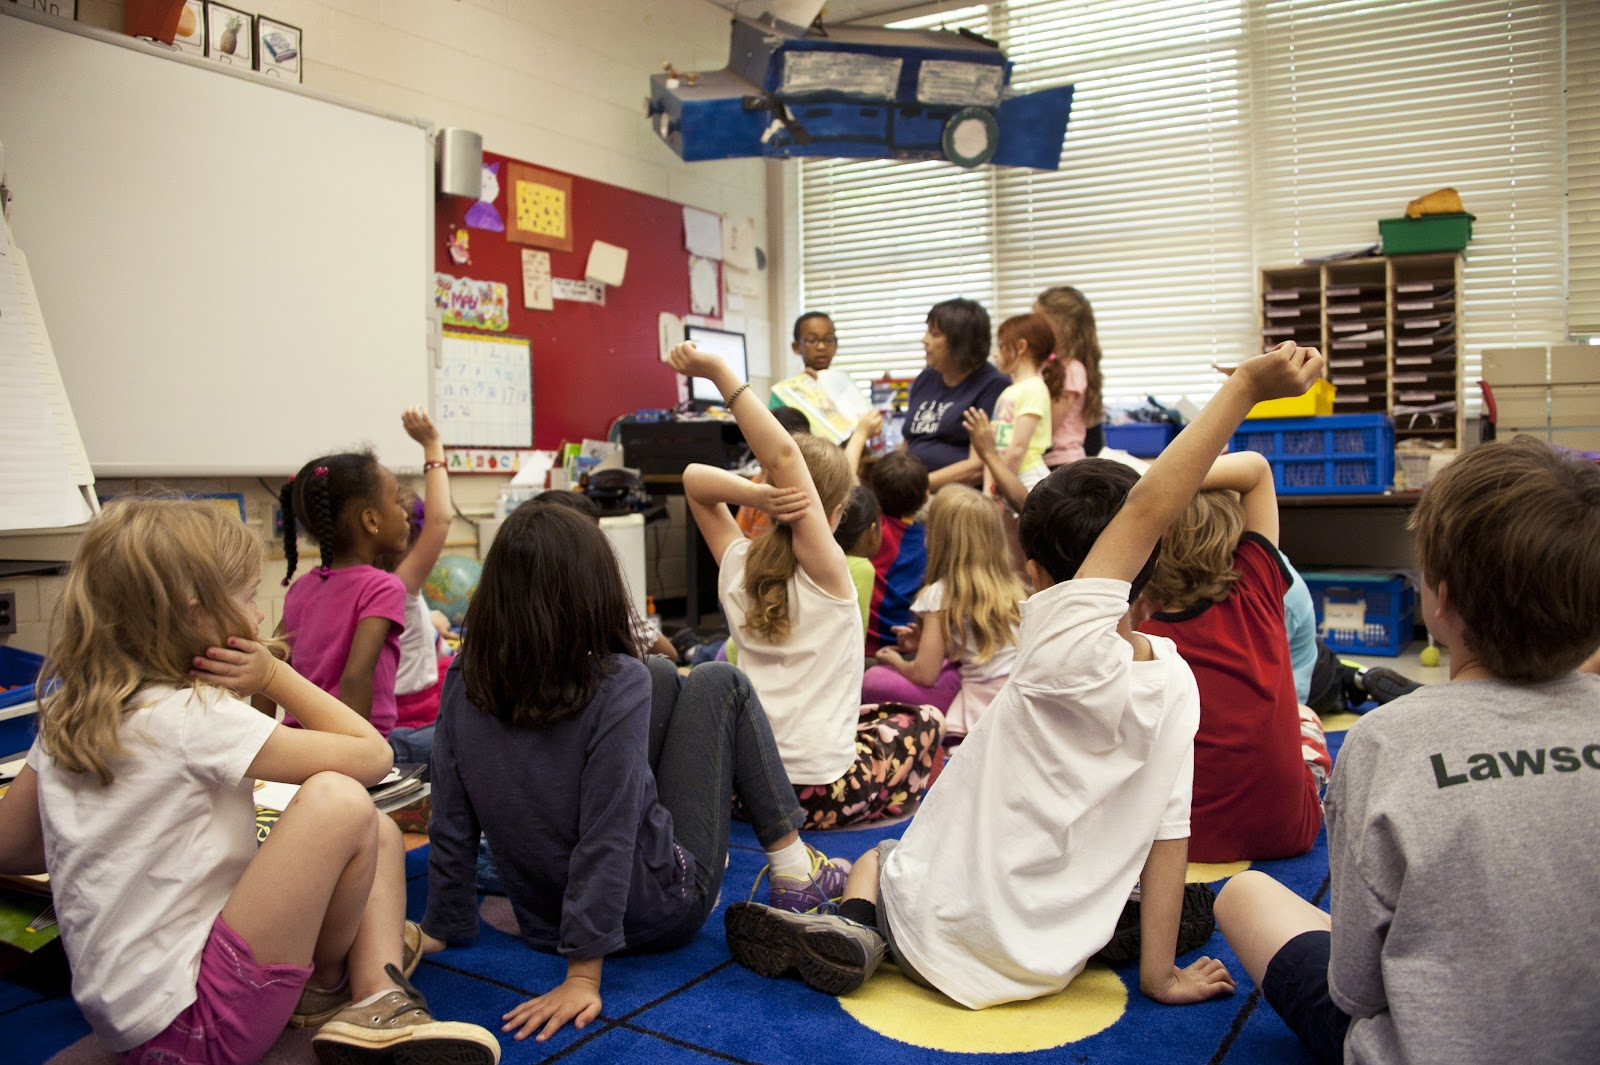 Elementary age students gather on a carpet, some with hands raised as their teacher sits in front of them all.